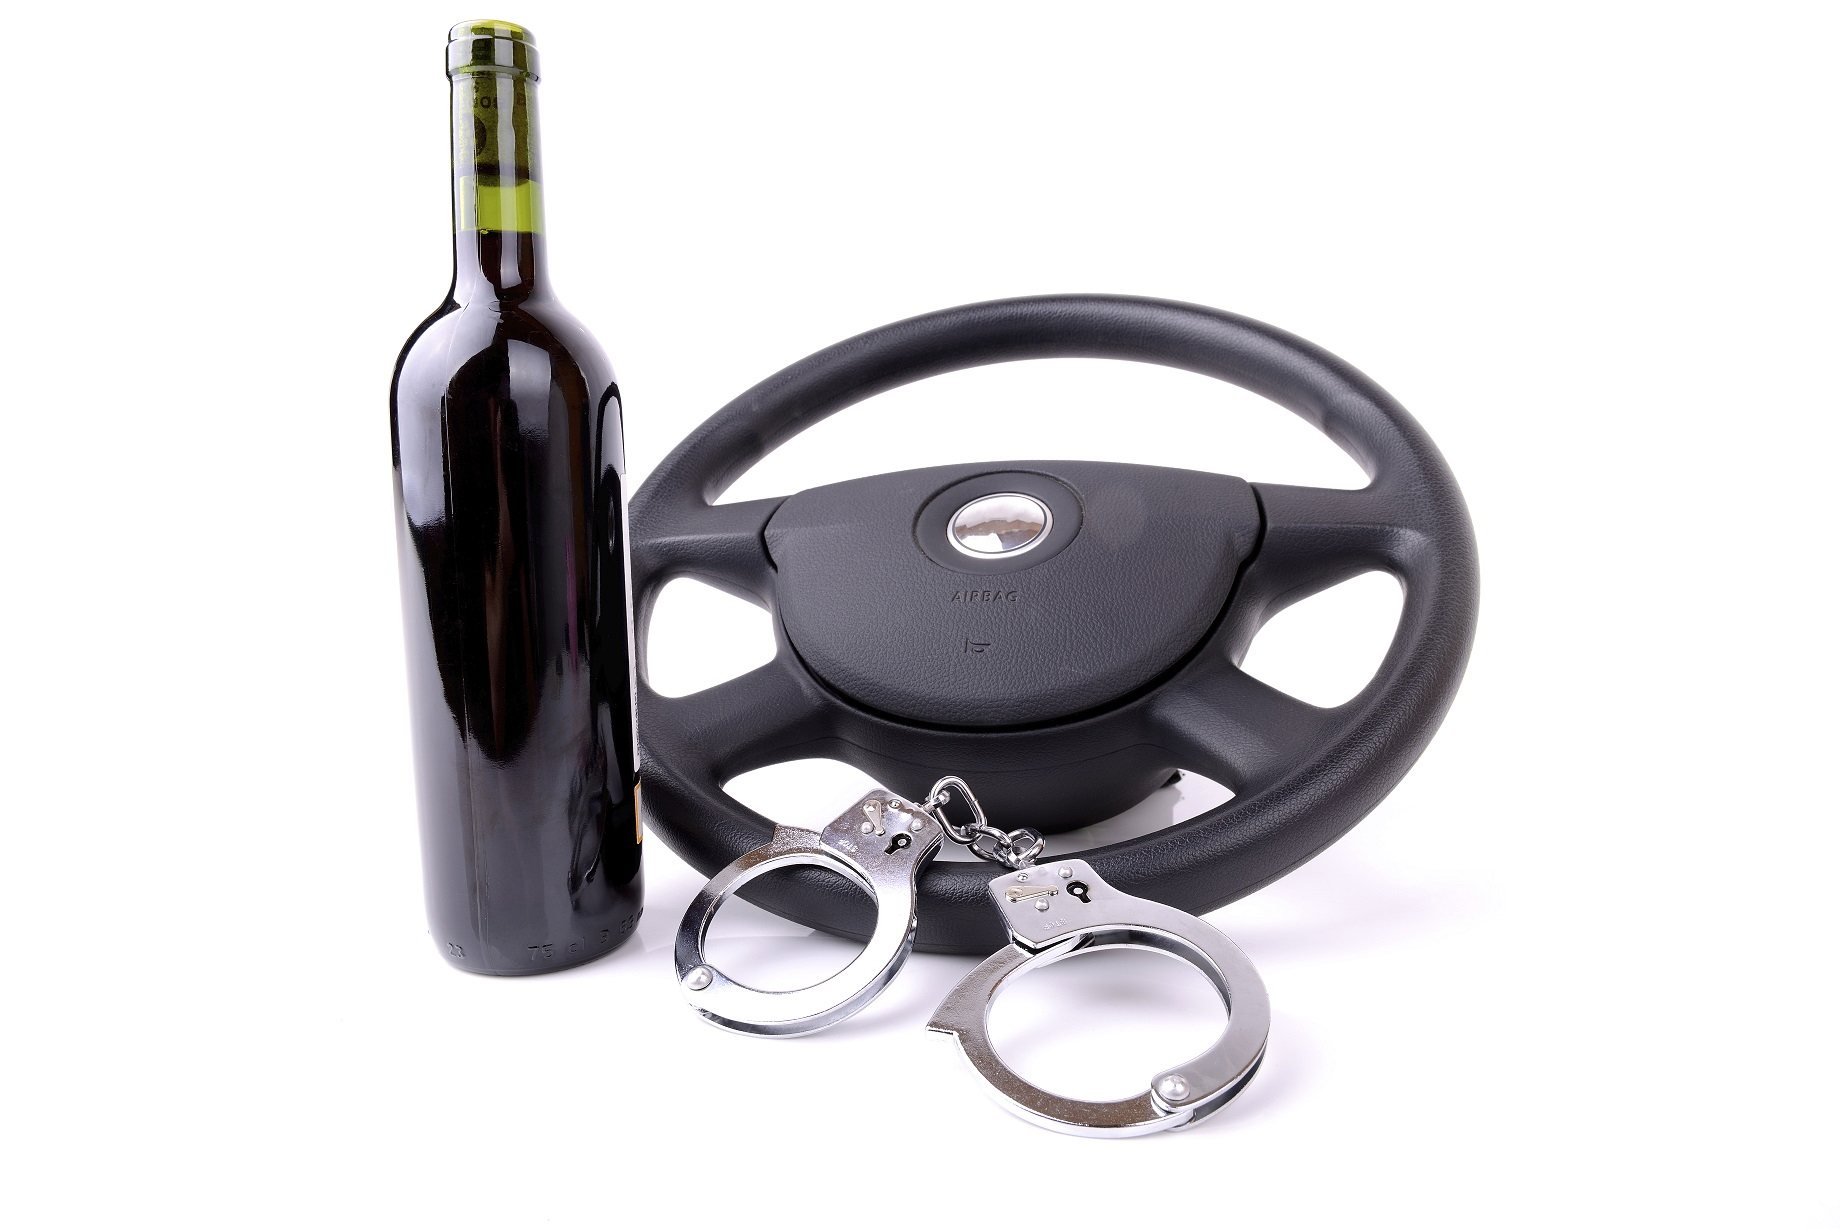 Wine bottle, steering wheel and metal handcuffs on a white background